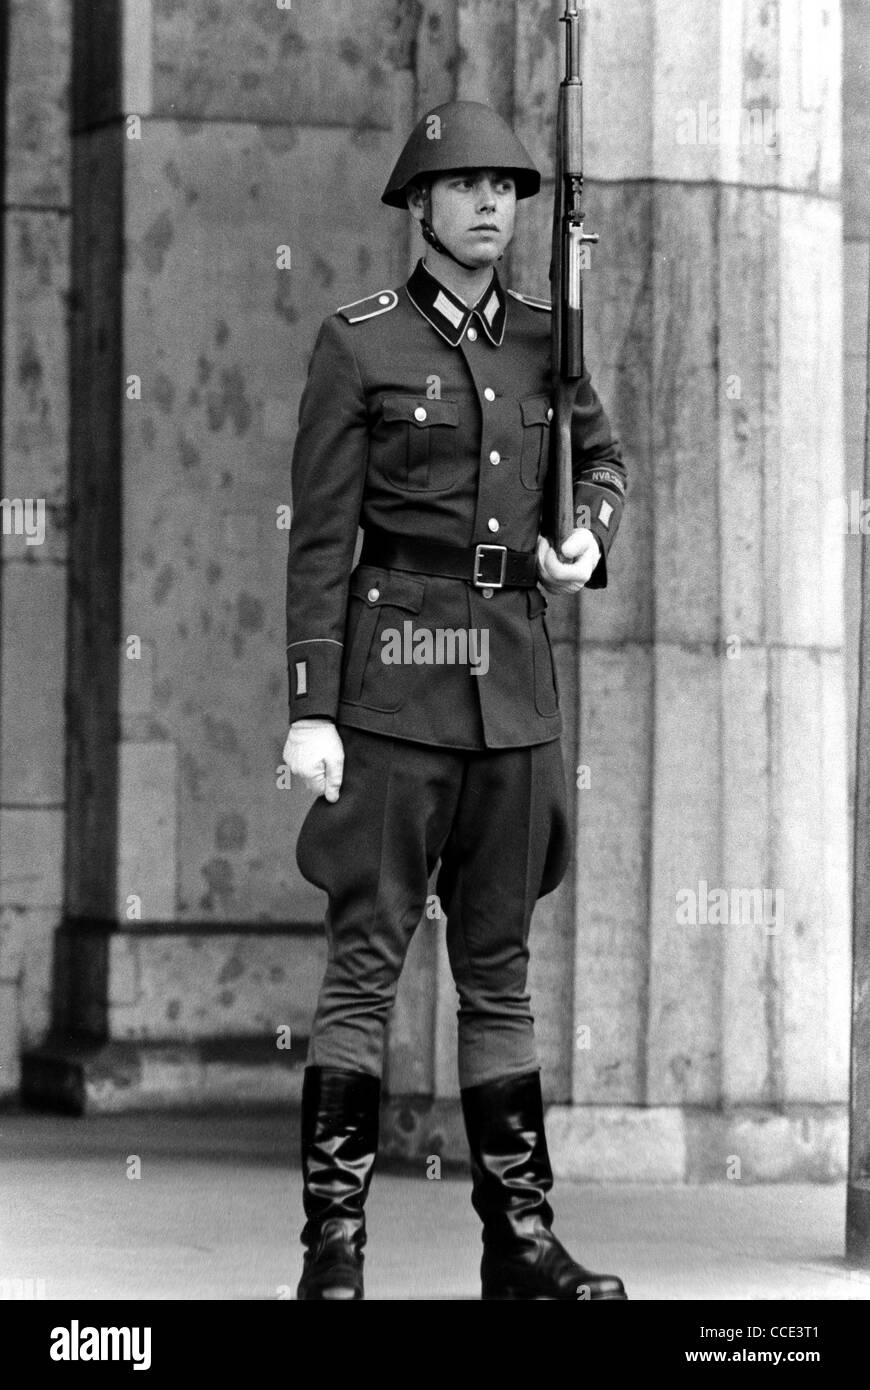 Soldier of the National People's Army of the GDR in East Berlin. - Stock Image